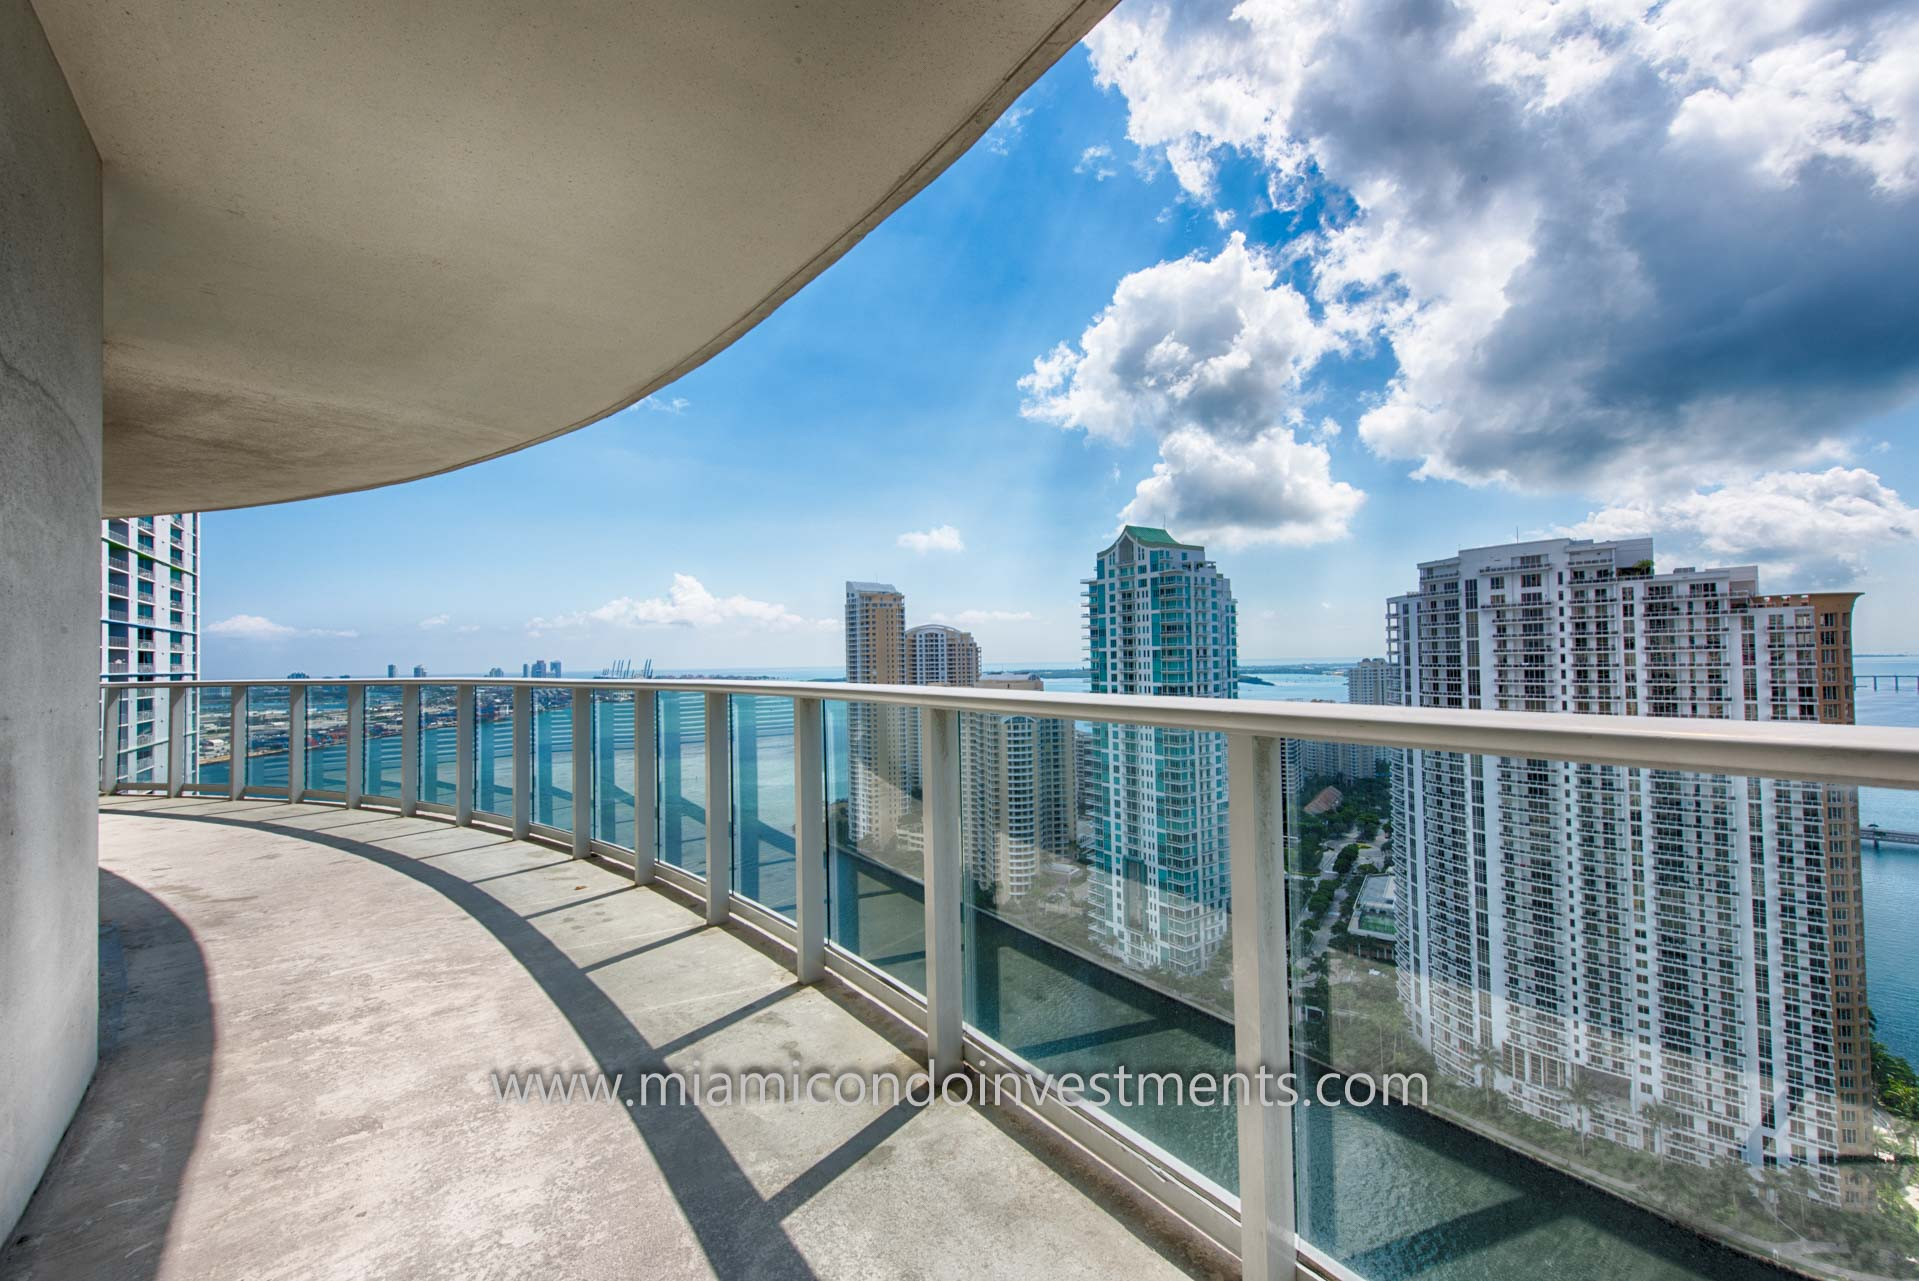 views of the Miami River, Brickell Key, and Biscayne Bay from balcony